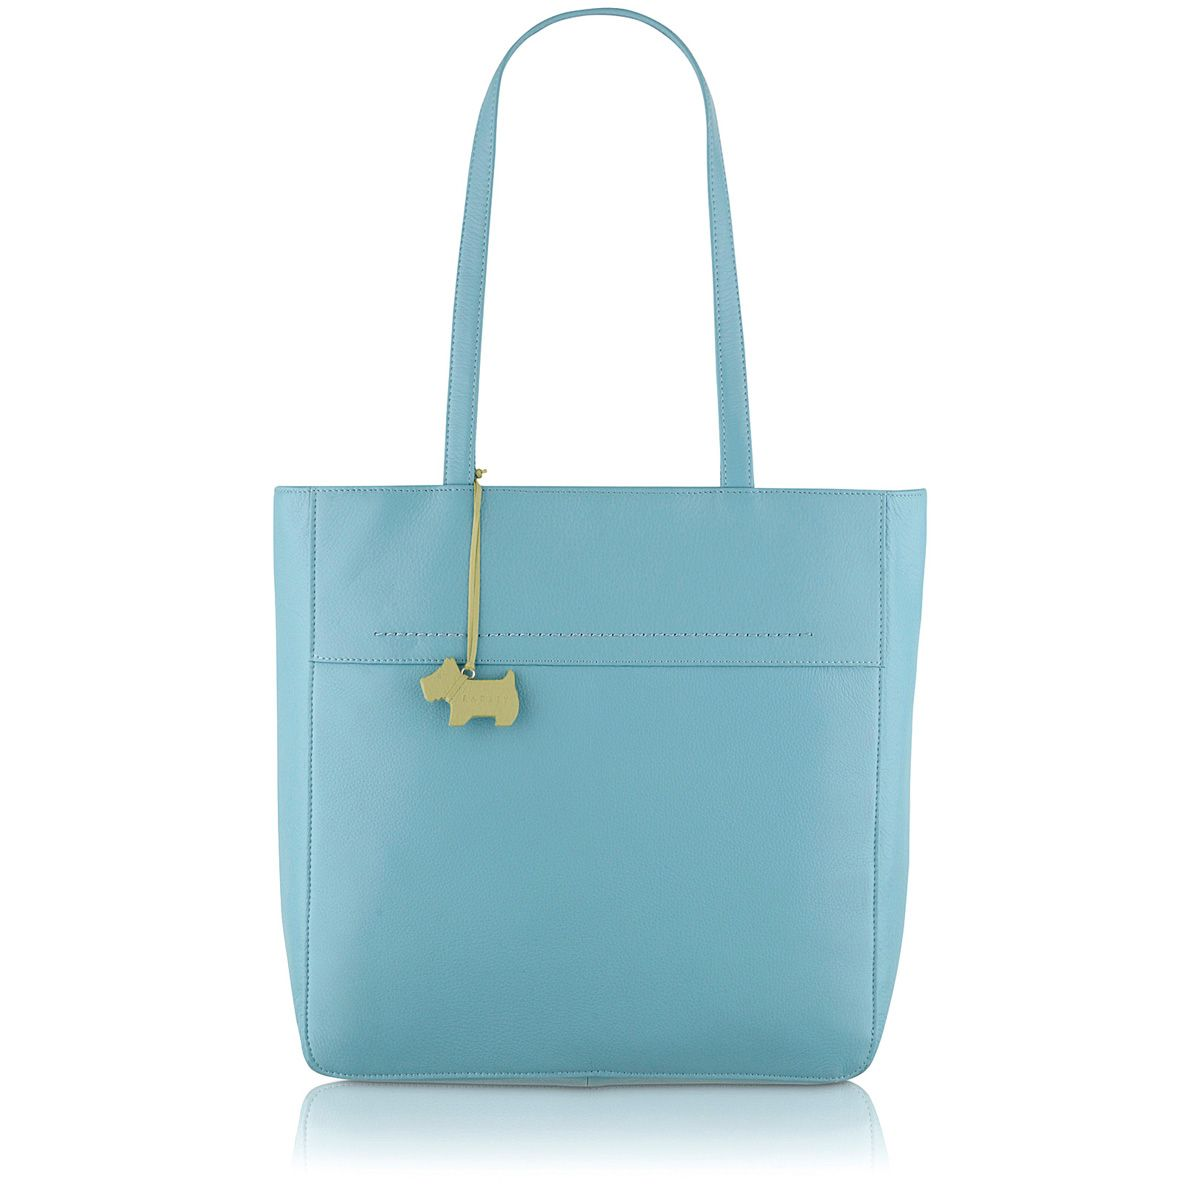 Blue large tote bag